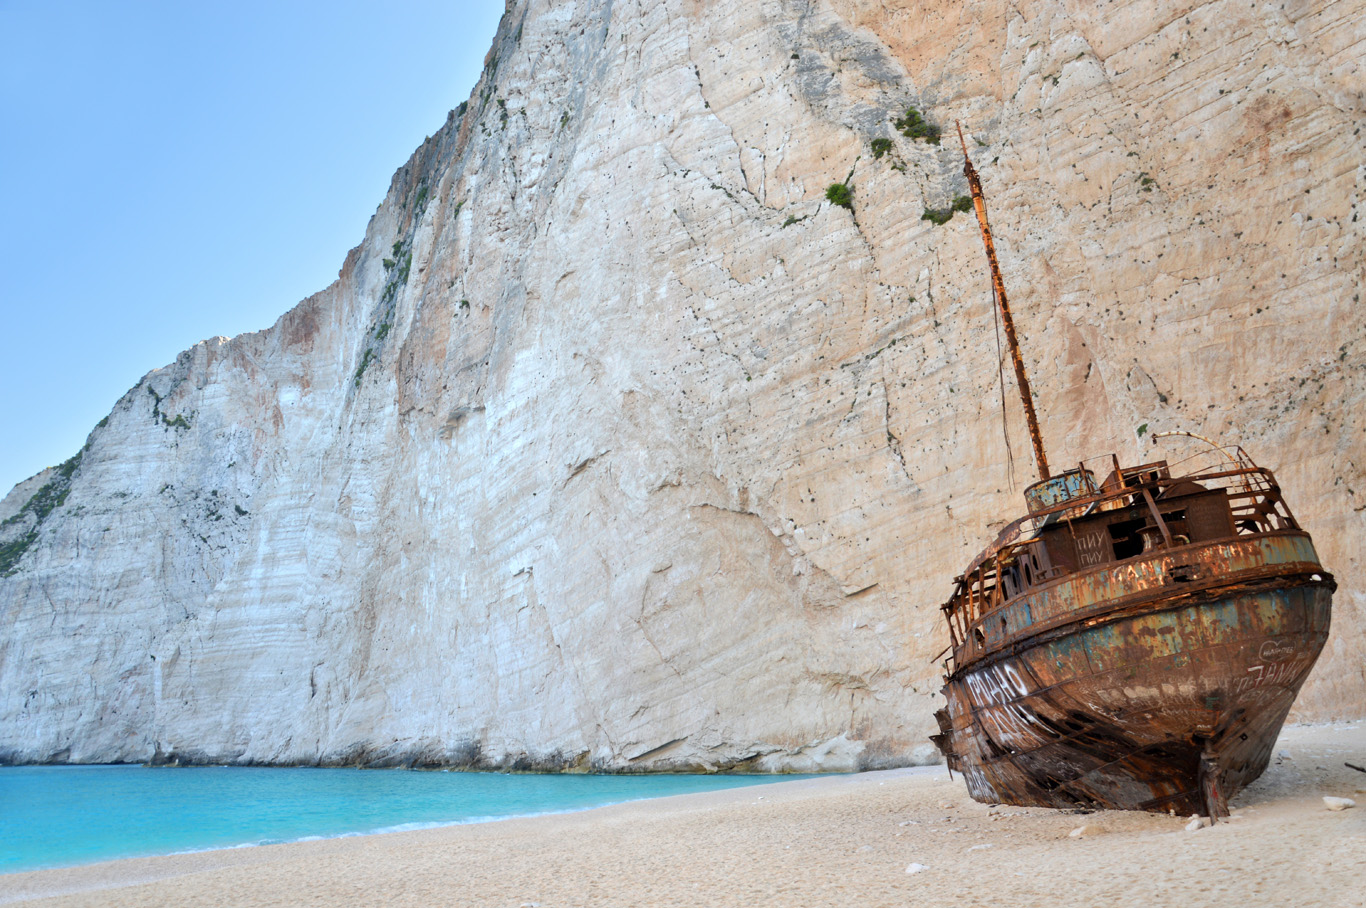 Zakynthos Shipwreck in Greece